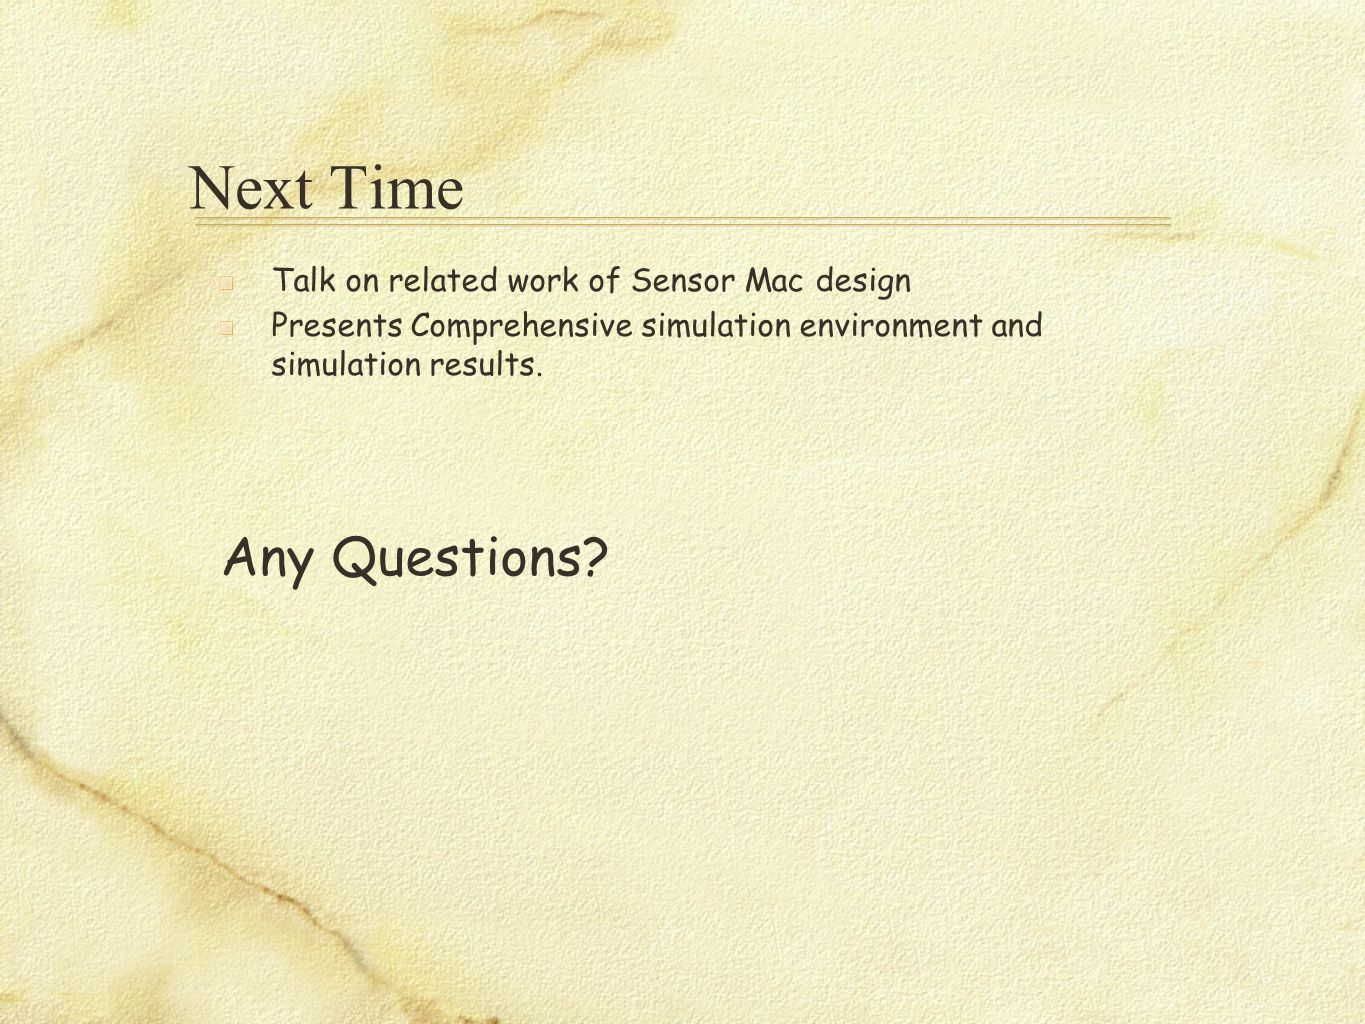 Next Time Talk on related work of Sensor Mac design Presents Comprehensive simulation environment and simulation results. Any Questions?